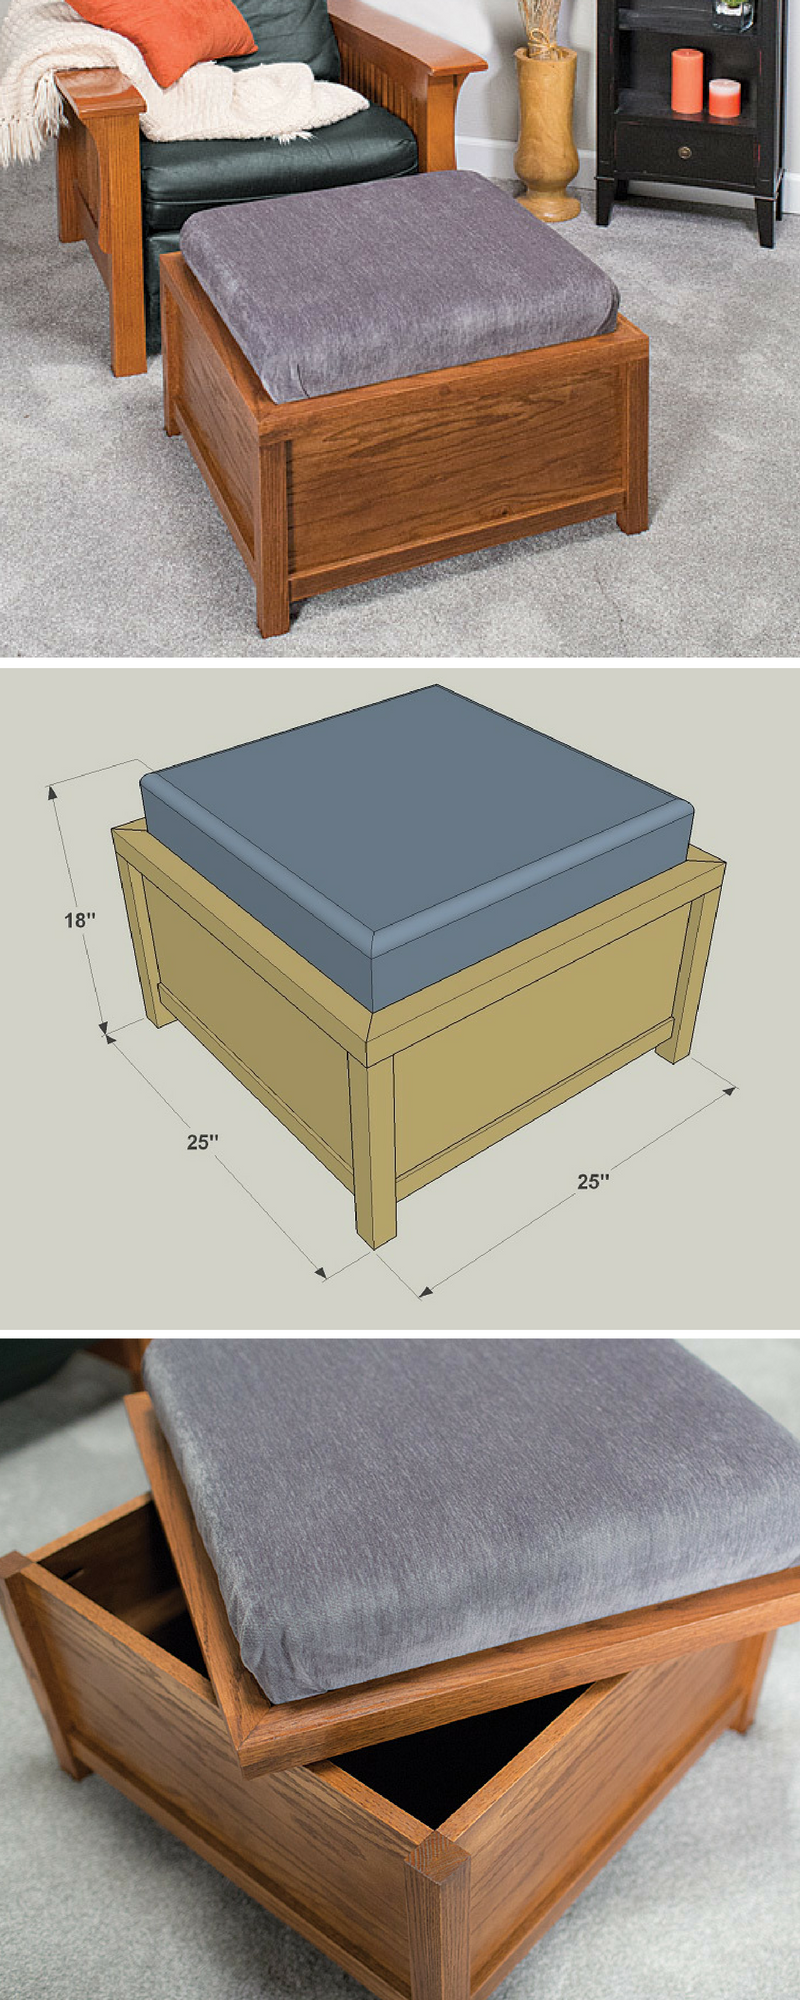 Woodworking Projects For Beginners With Images Diy Storage